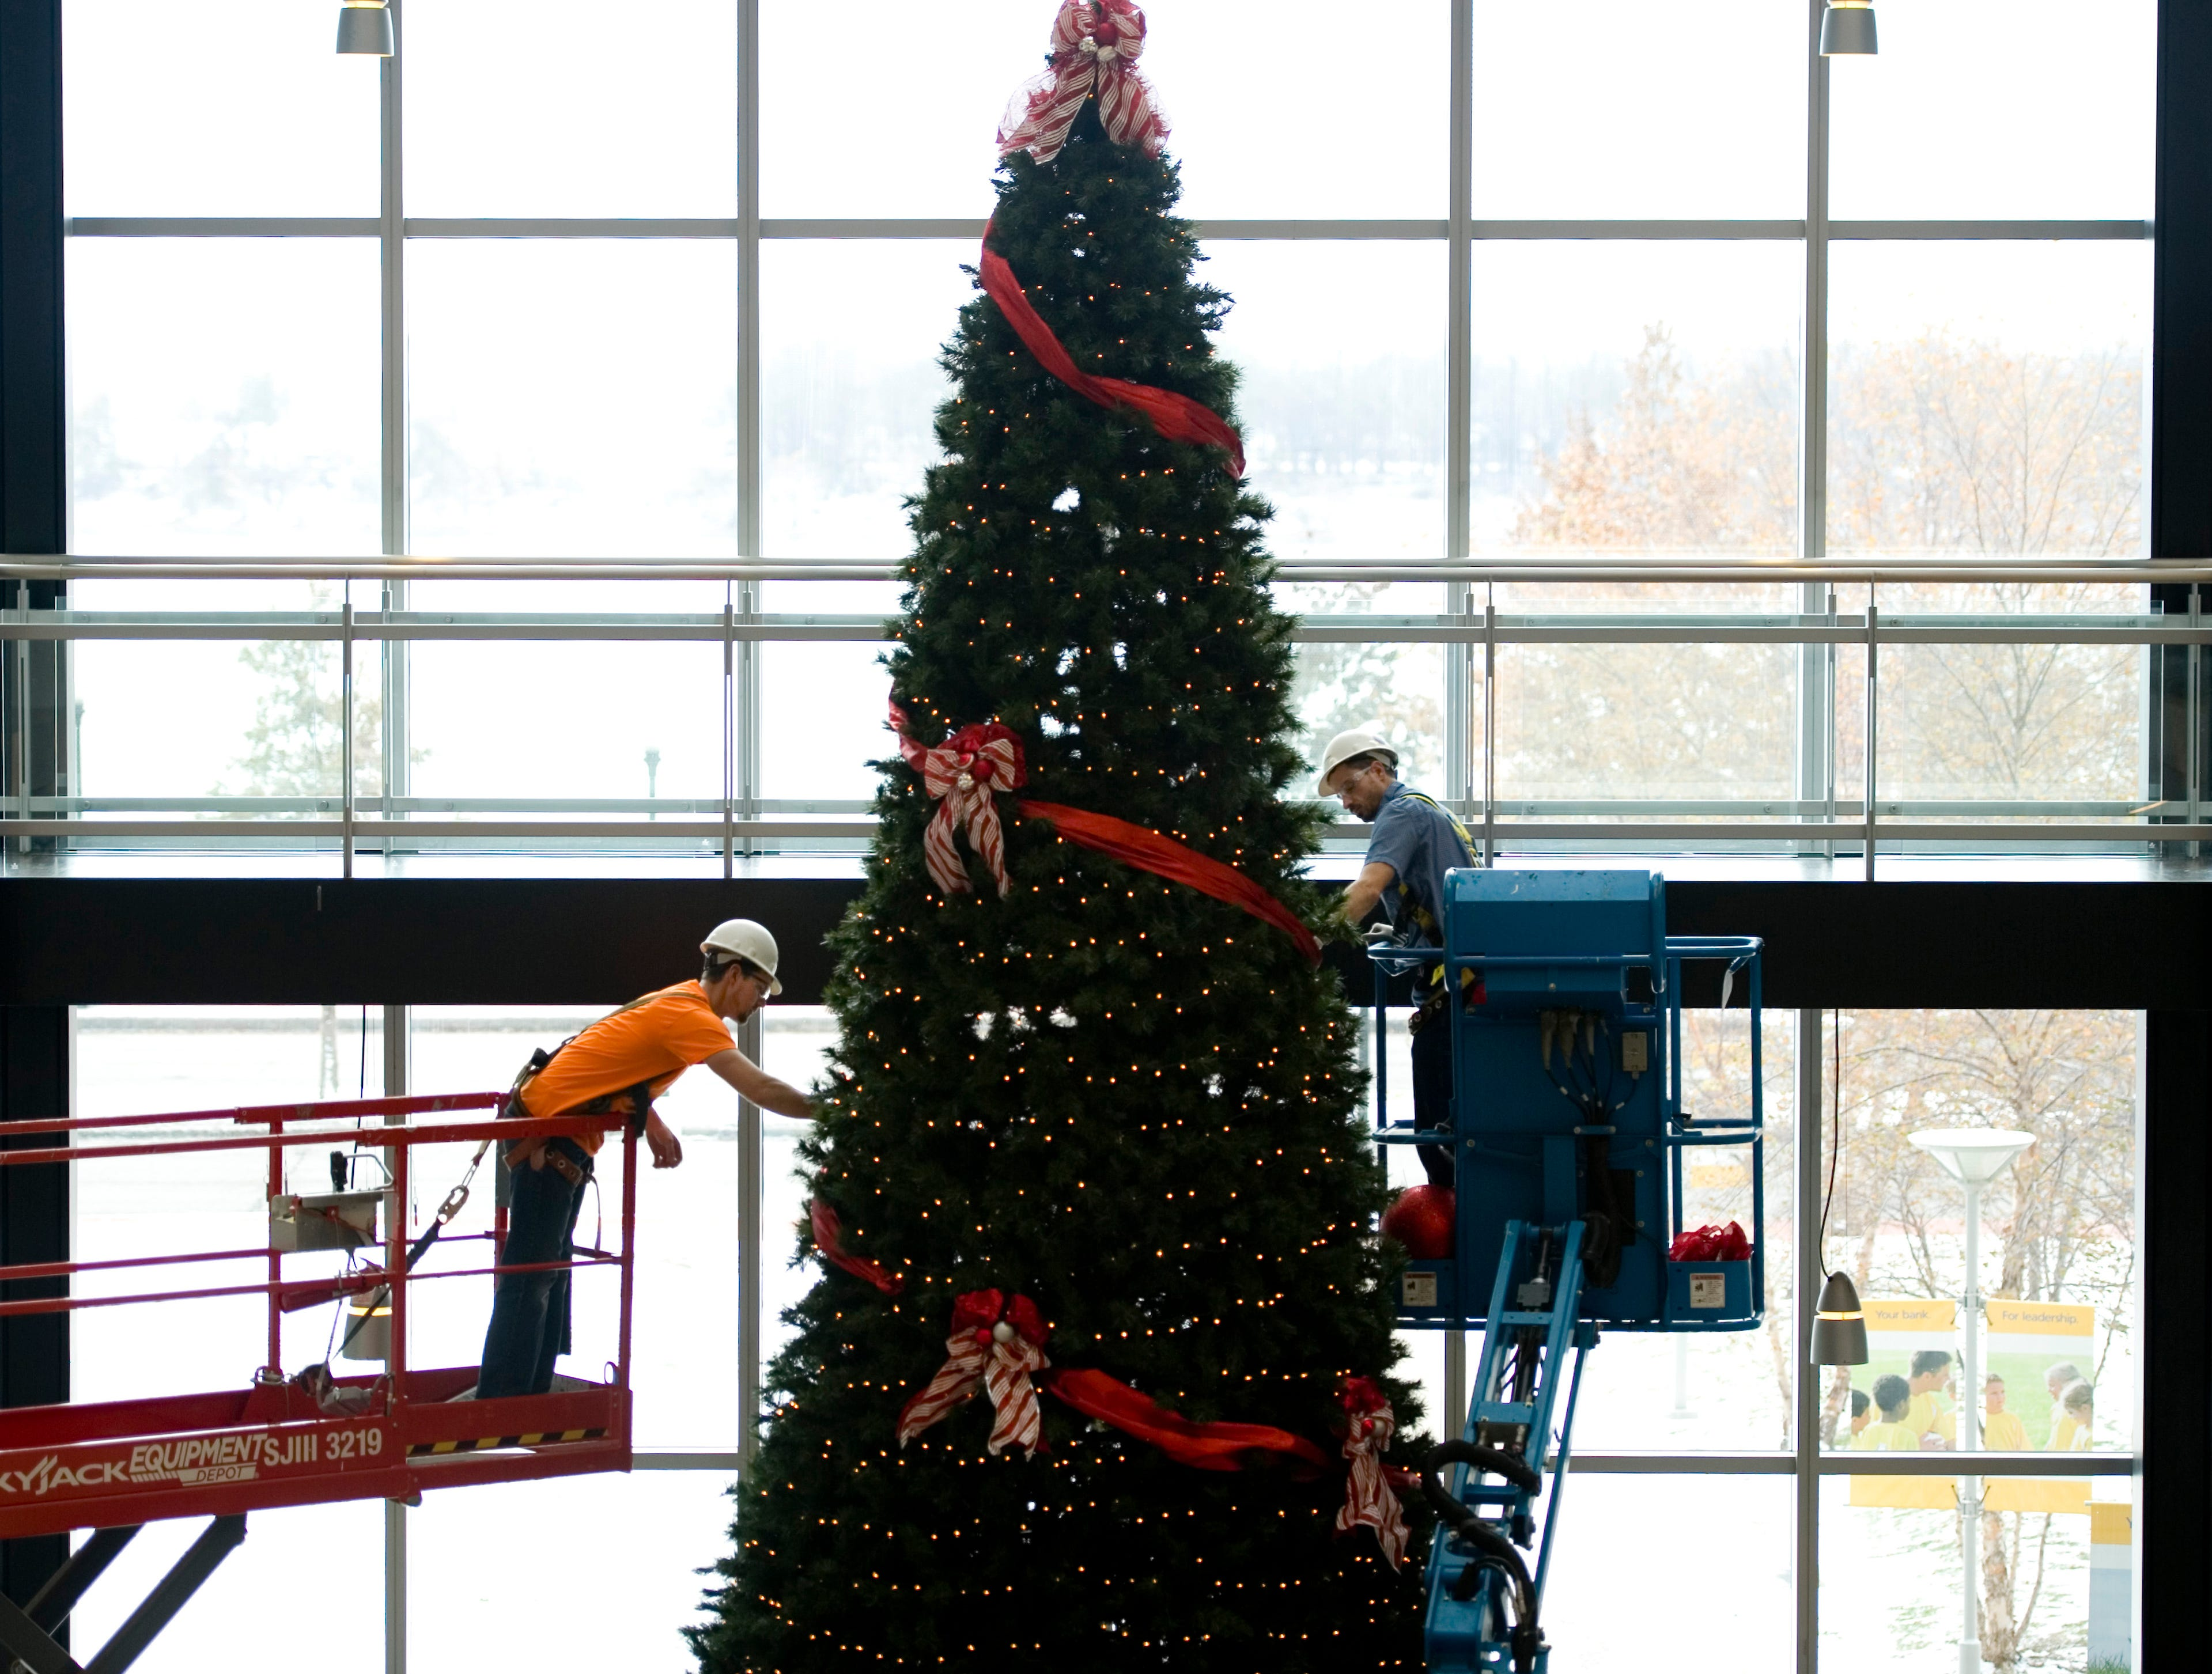 Industrial Contractors employees Brian Wagner (left) and Frank Martin decorate the Hospice Reflection Tree using bucket lifts in the lobby of Old National Bank Monday afternoon. The 37-foot-tall tree is used by the Deaconess Foundation to raise money for funding hospice bereavement programs, hospice services and equipment.